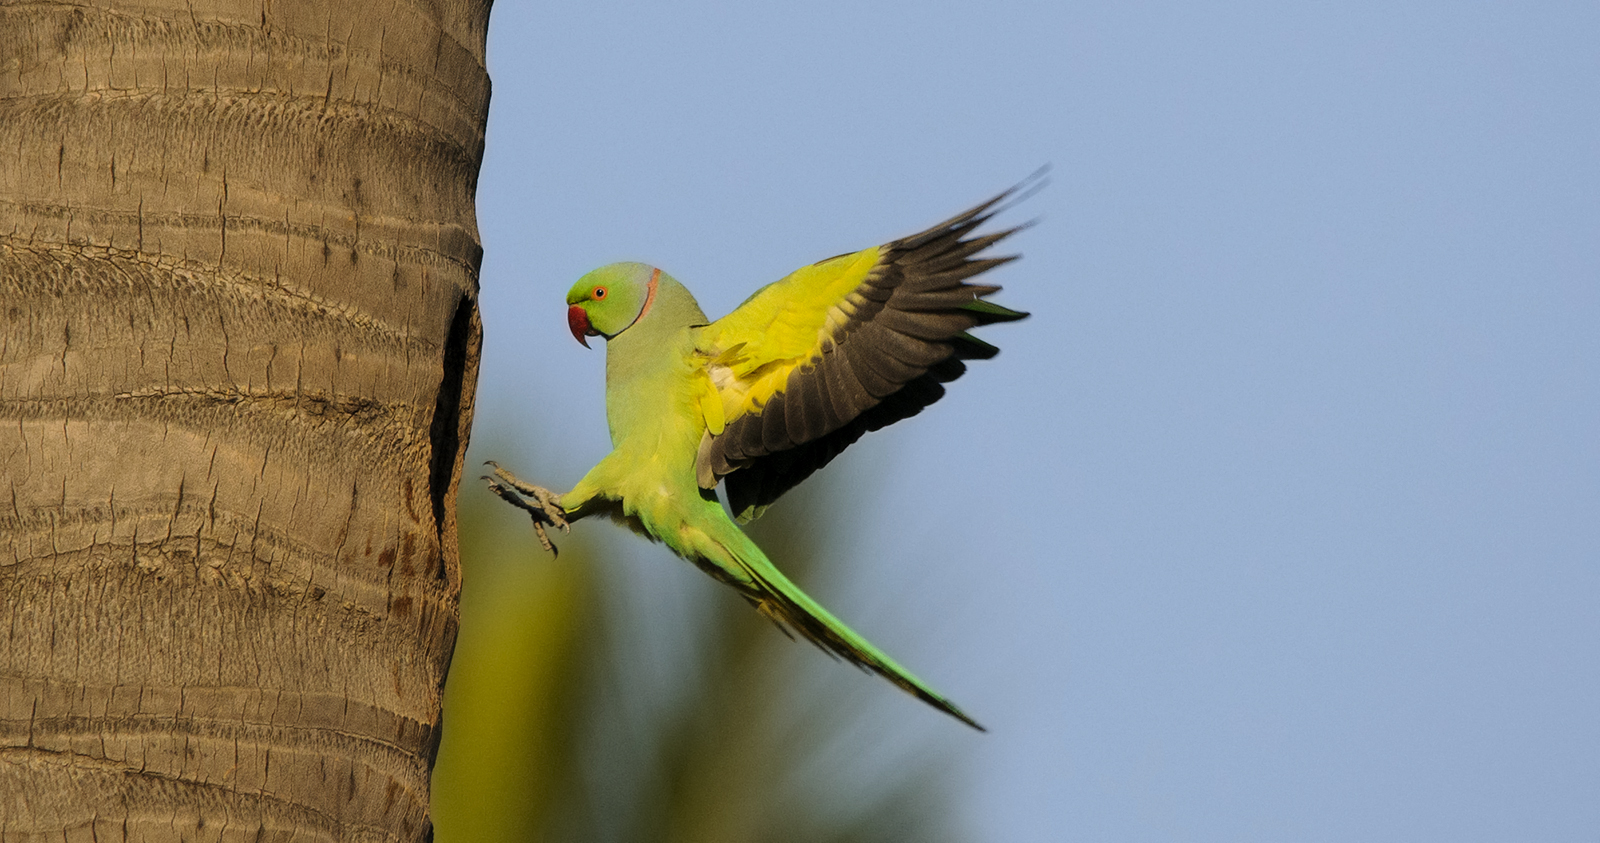 The Rose-Ringed Parakeet or Indian Ringneck is classified as a smaller parrot known as a parakeet. These birds have a hooked beak, a long tail, and are smaller in size compared to most parrots. These parrots are about 16 inches in length and they have a stealthy appearance that sets them apart from most exotic birds.